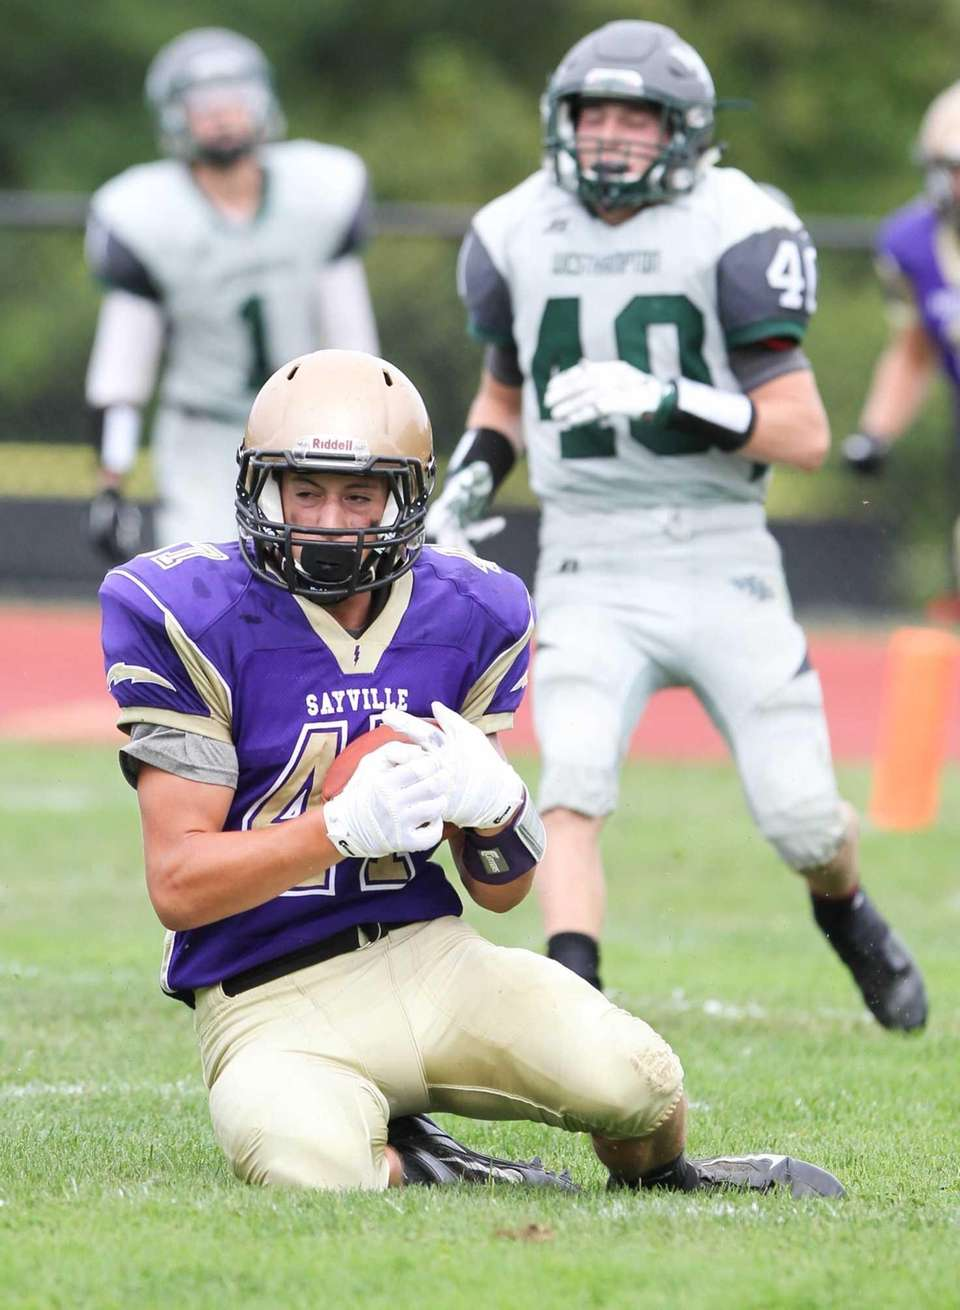 Sayville's Michael Dionisio catches a TD pass in